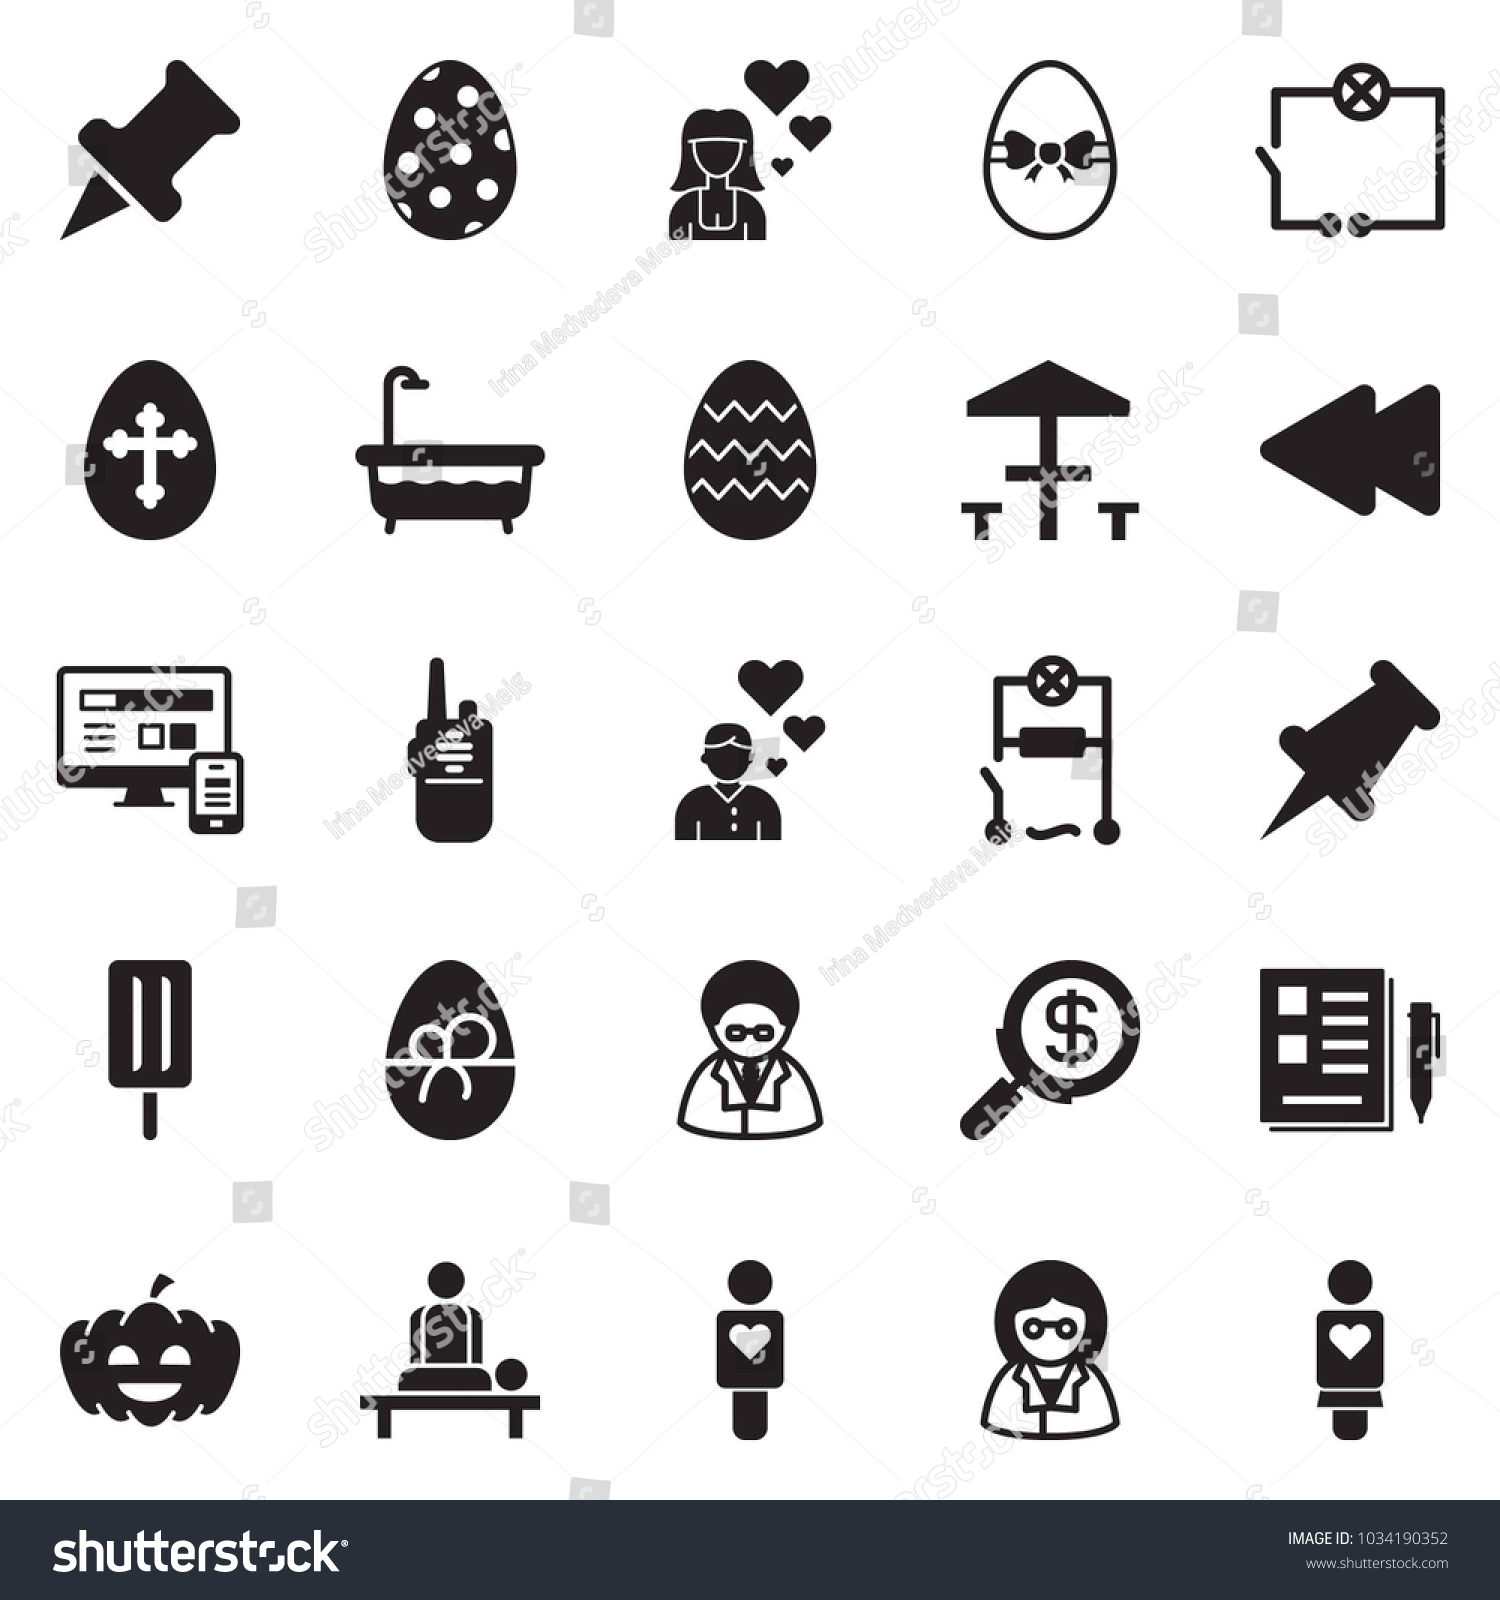 hight resolution of solid black vector icon set notes vector search money monitor phone wiring